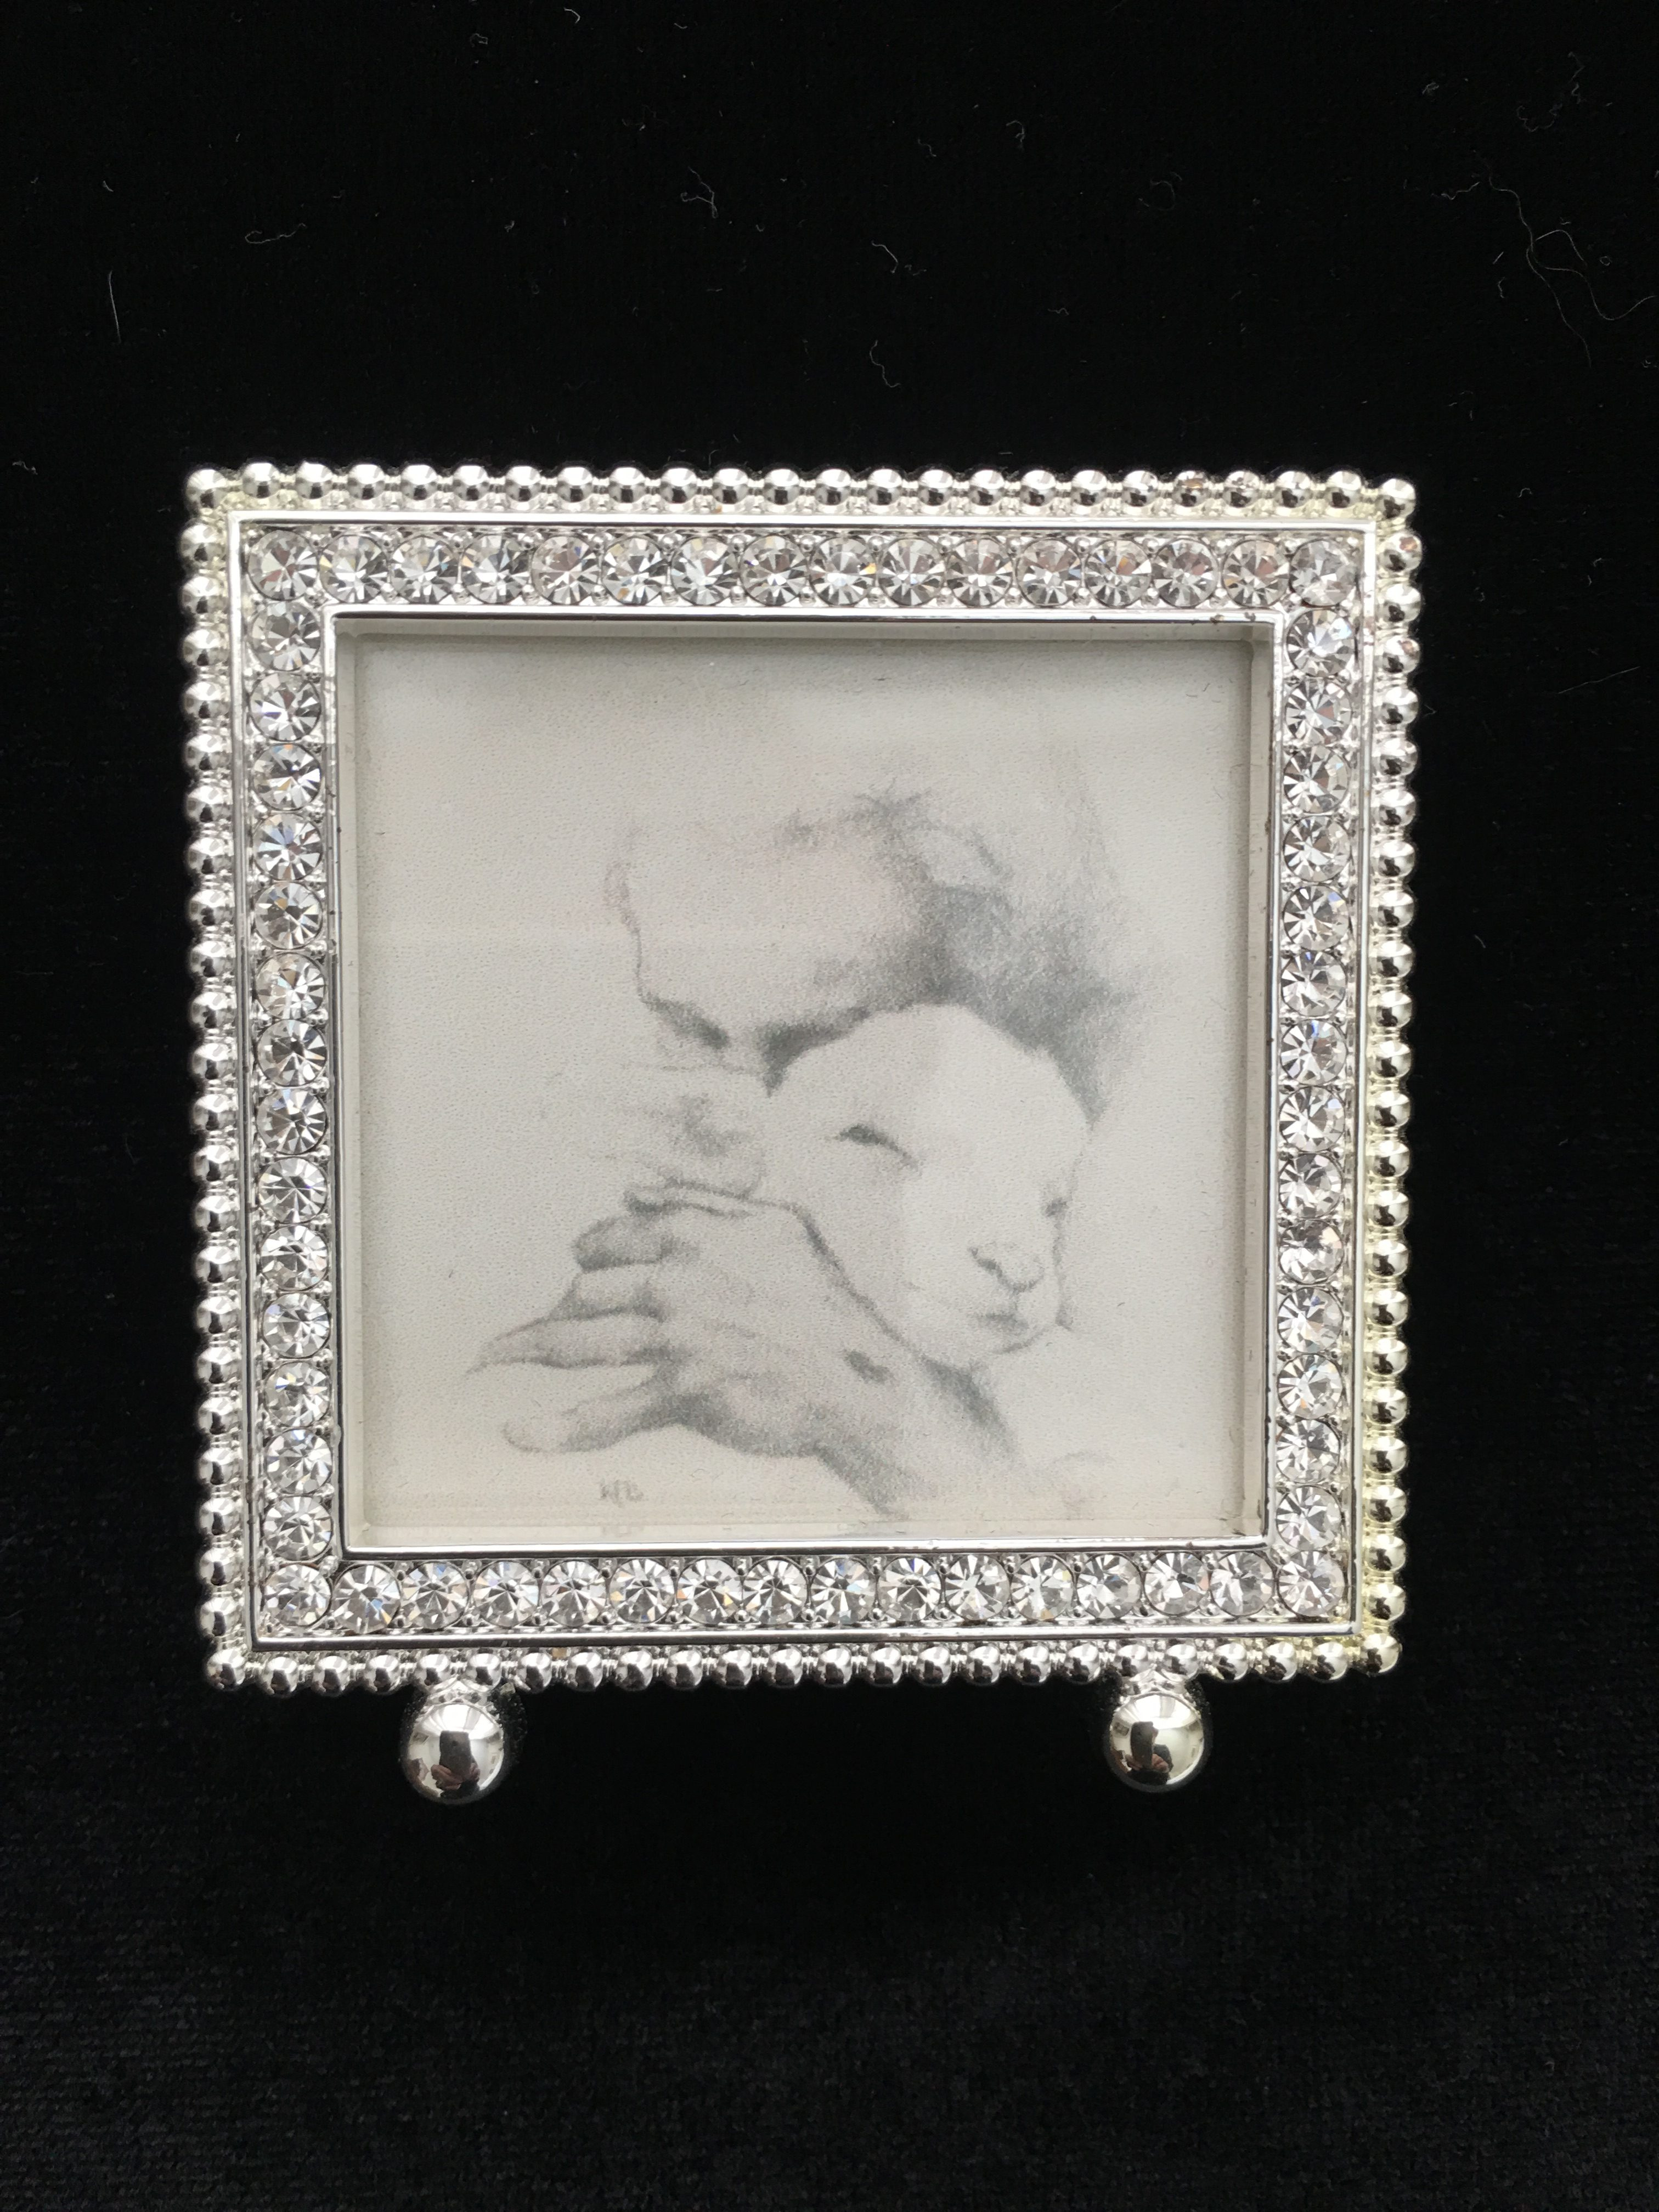 Jesus and the Lamb B&W mini framed print 2x2 - Jesus and the Lamb